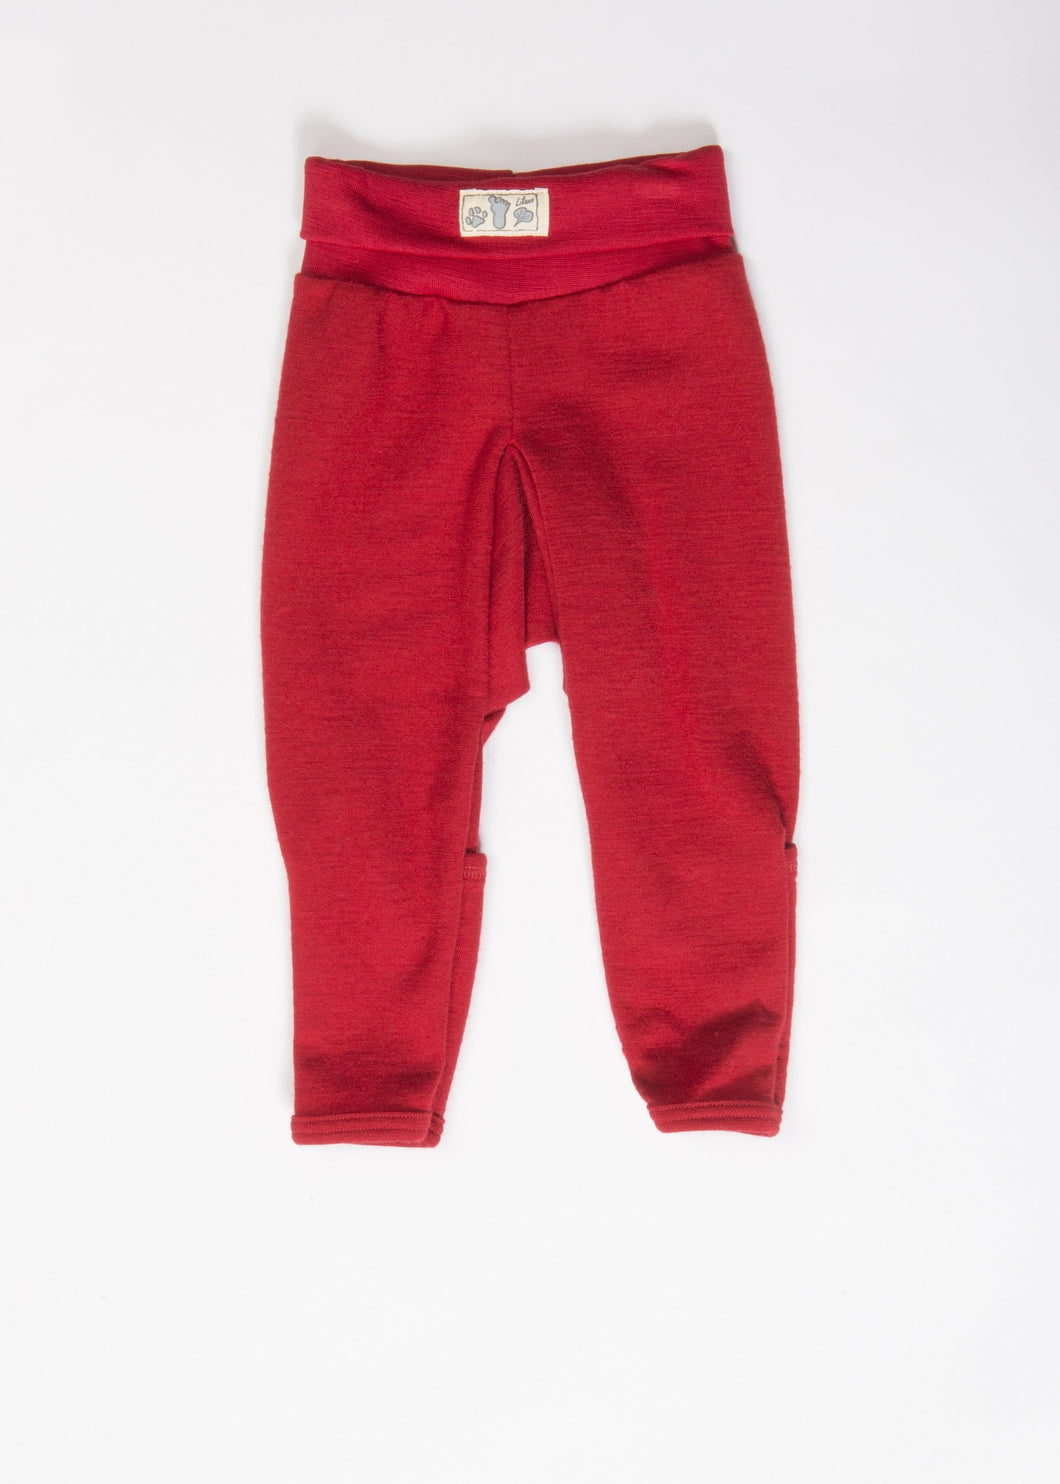 Baby-Hose Wolle/Seide rot